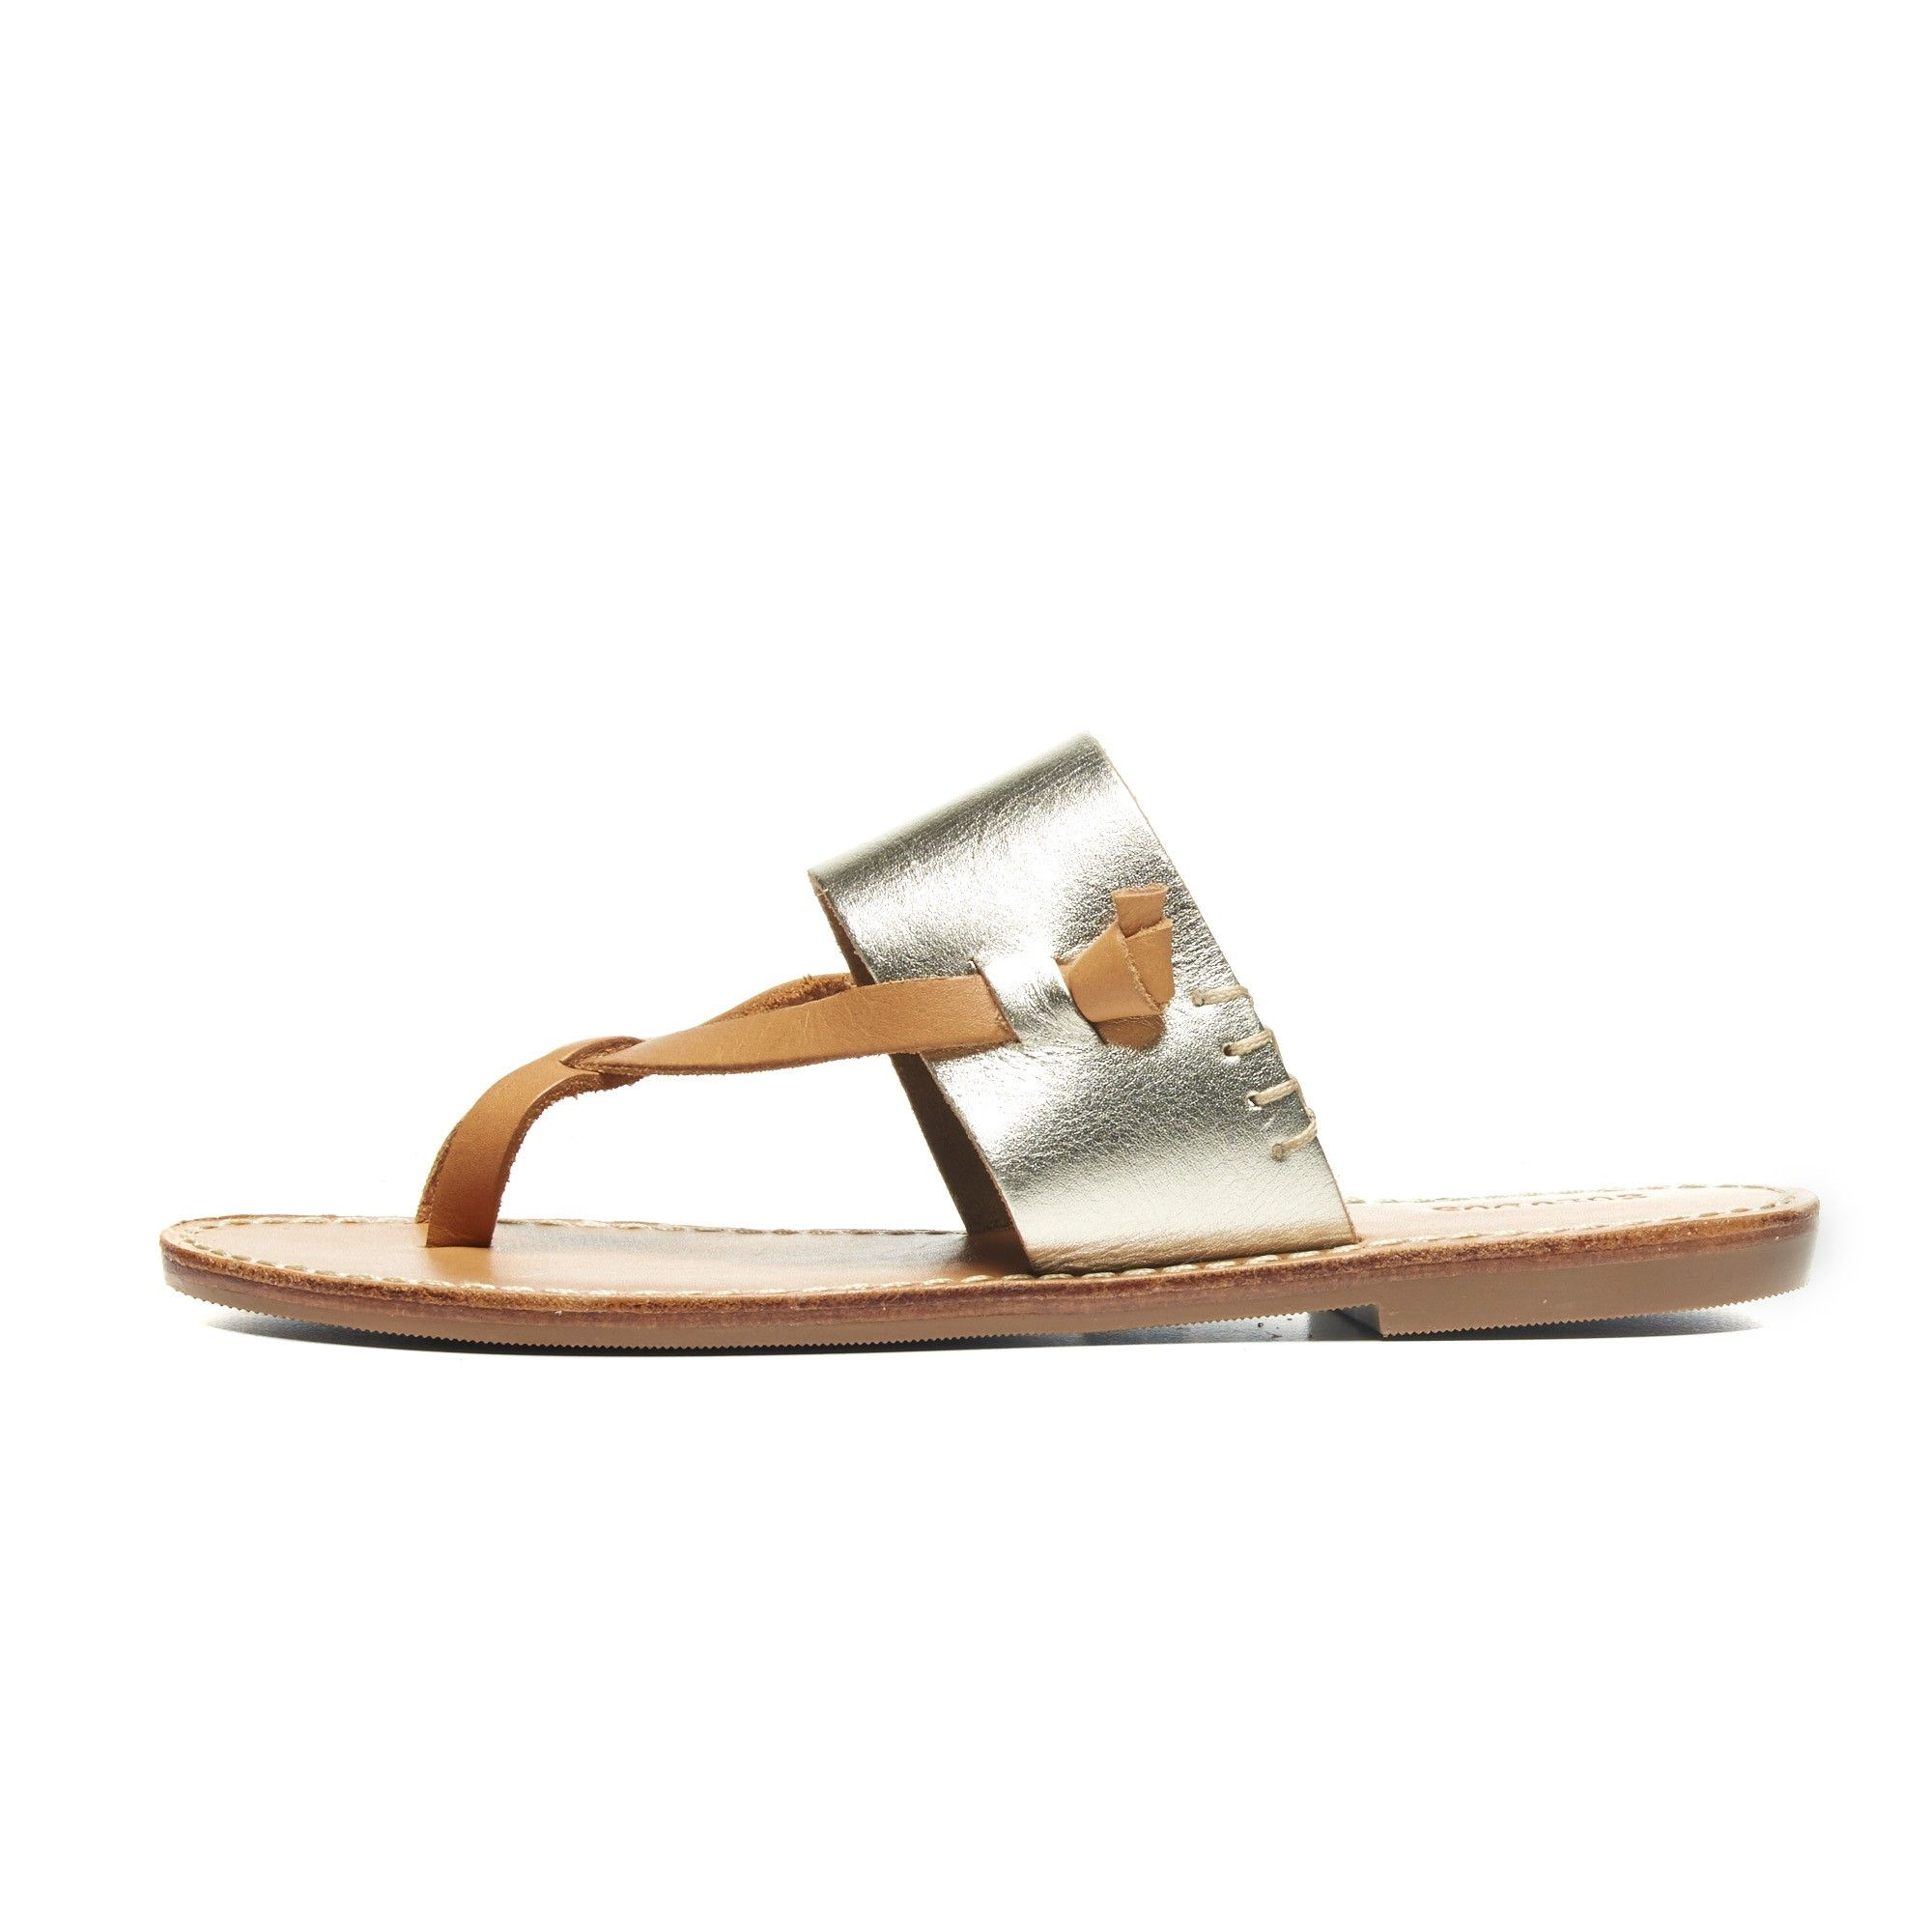 9b0941f0402a Soludos Metallic Leather Slotted Thong Sandal in Platinum - Soludos  Espadrilles